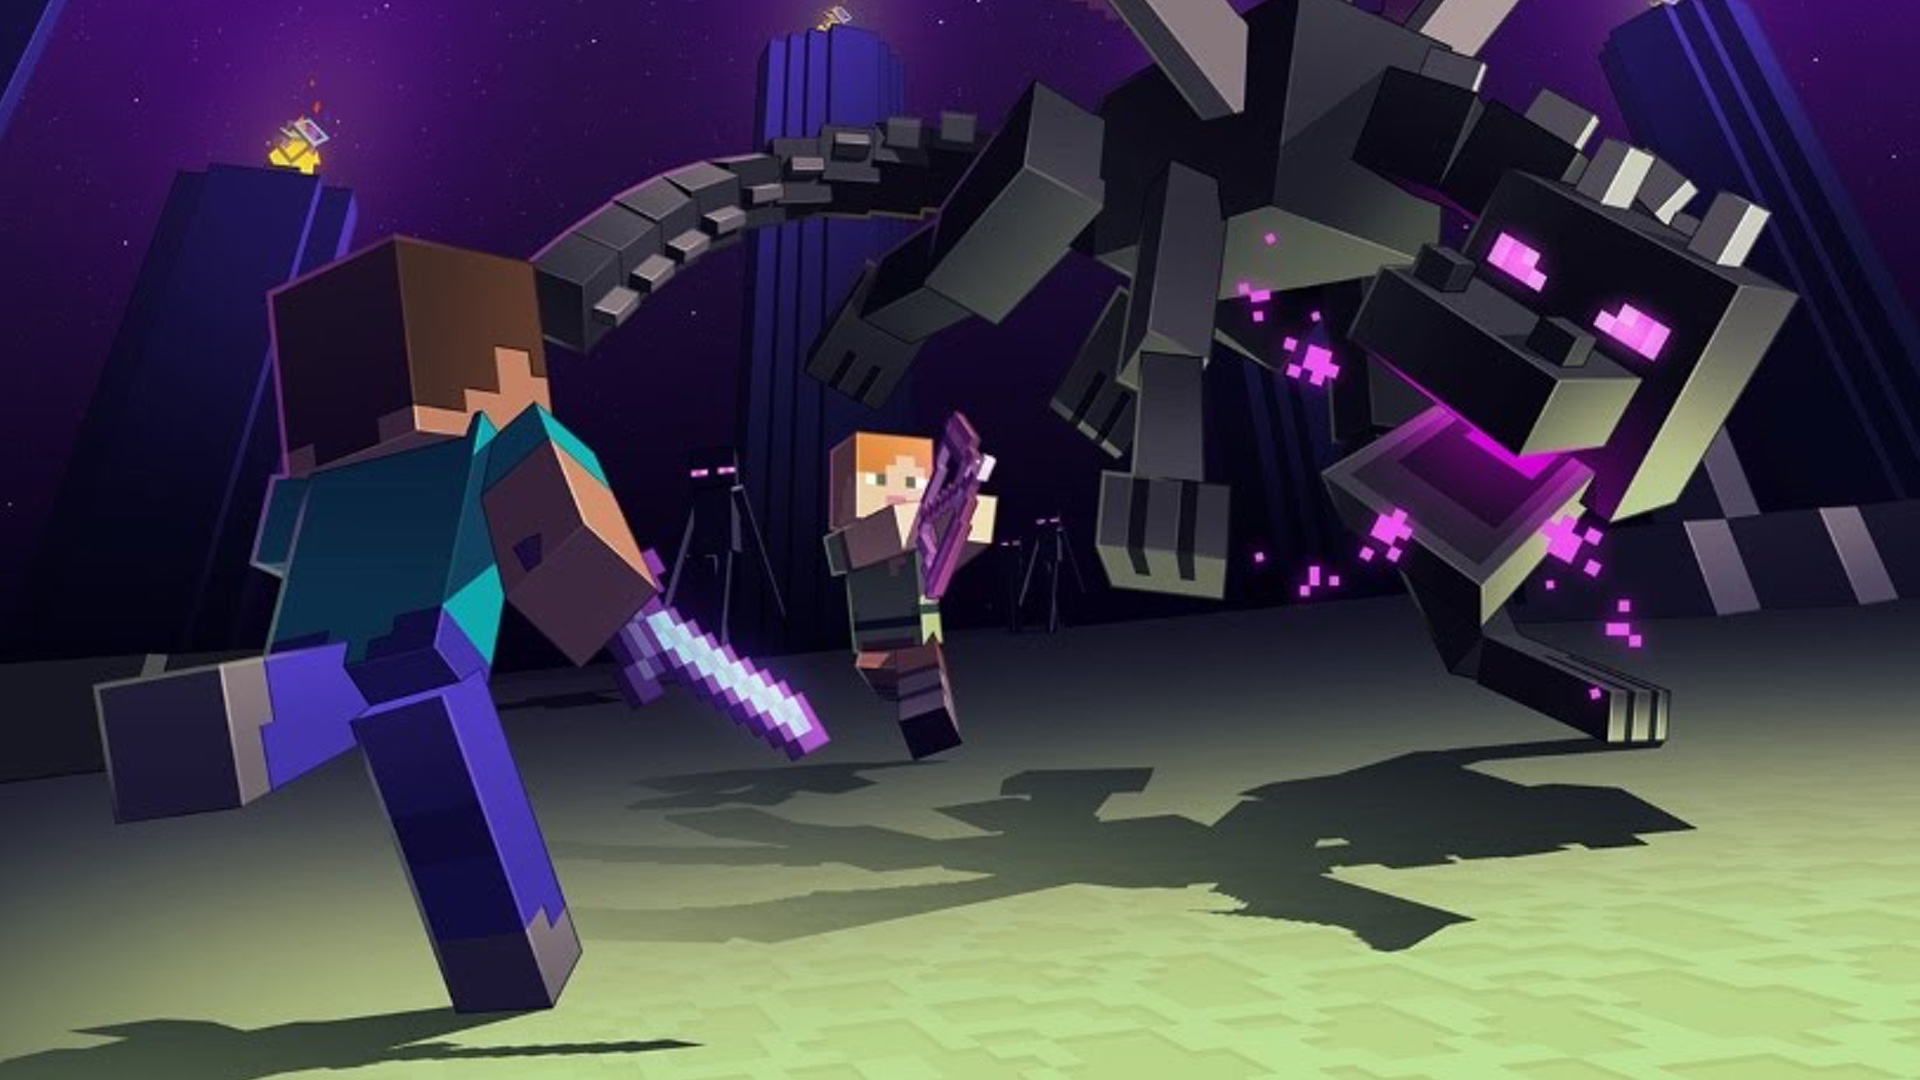 the-minecraft-movie-is-moving-forward-and-it-has-a-new-release-date-social.jpg